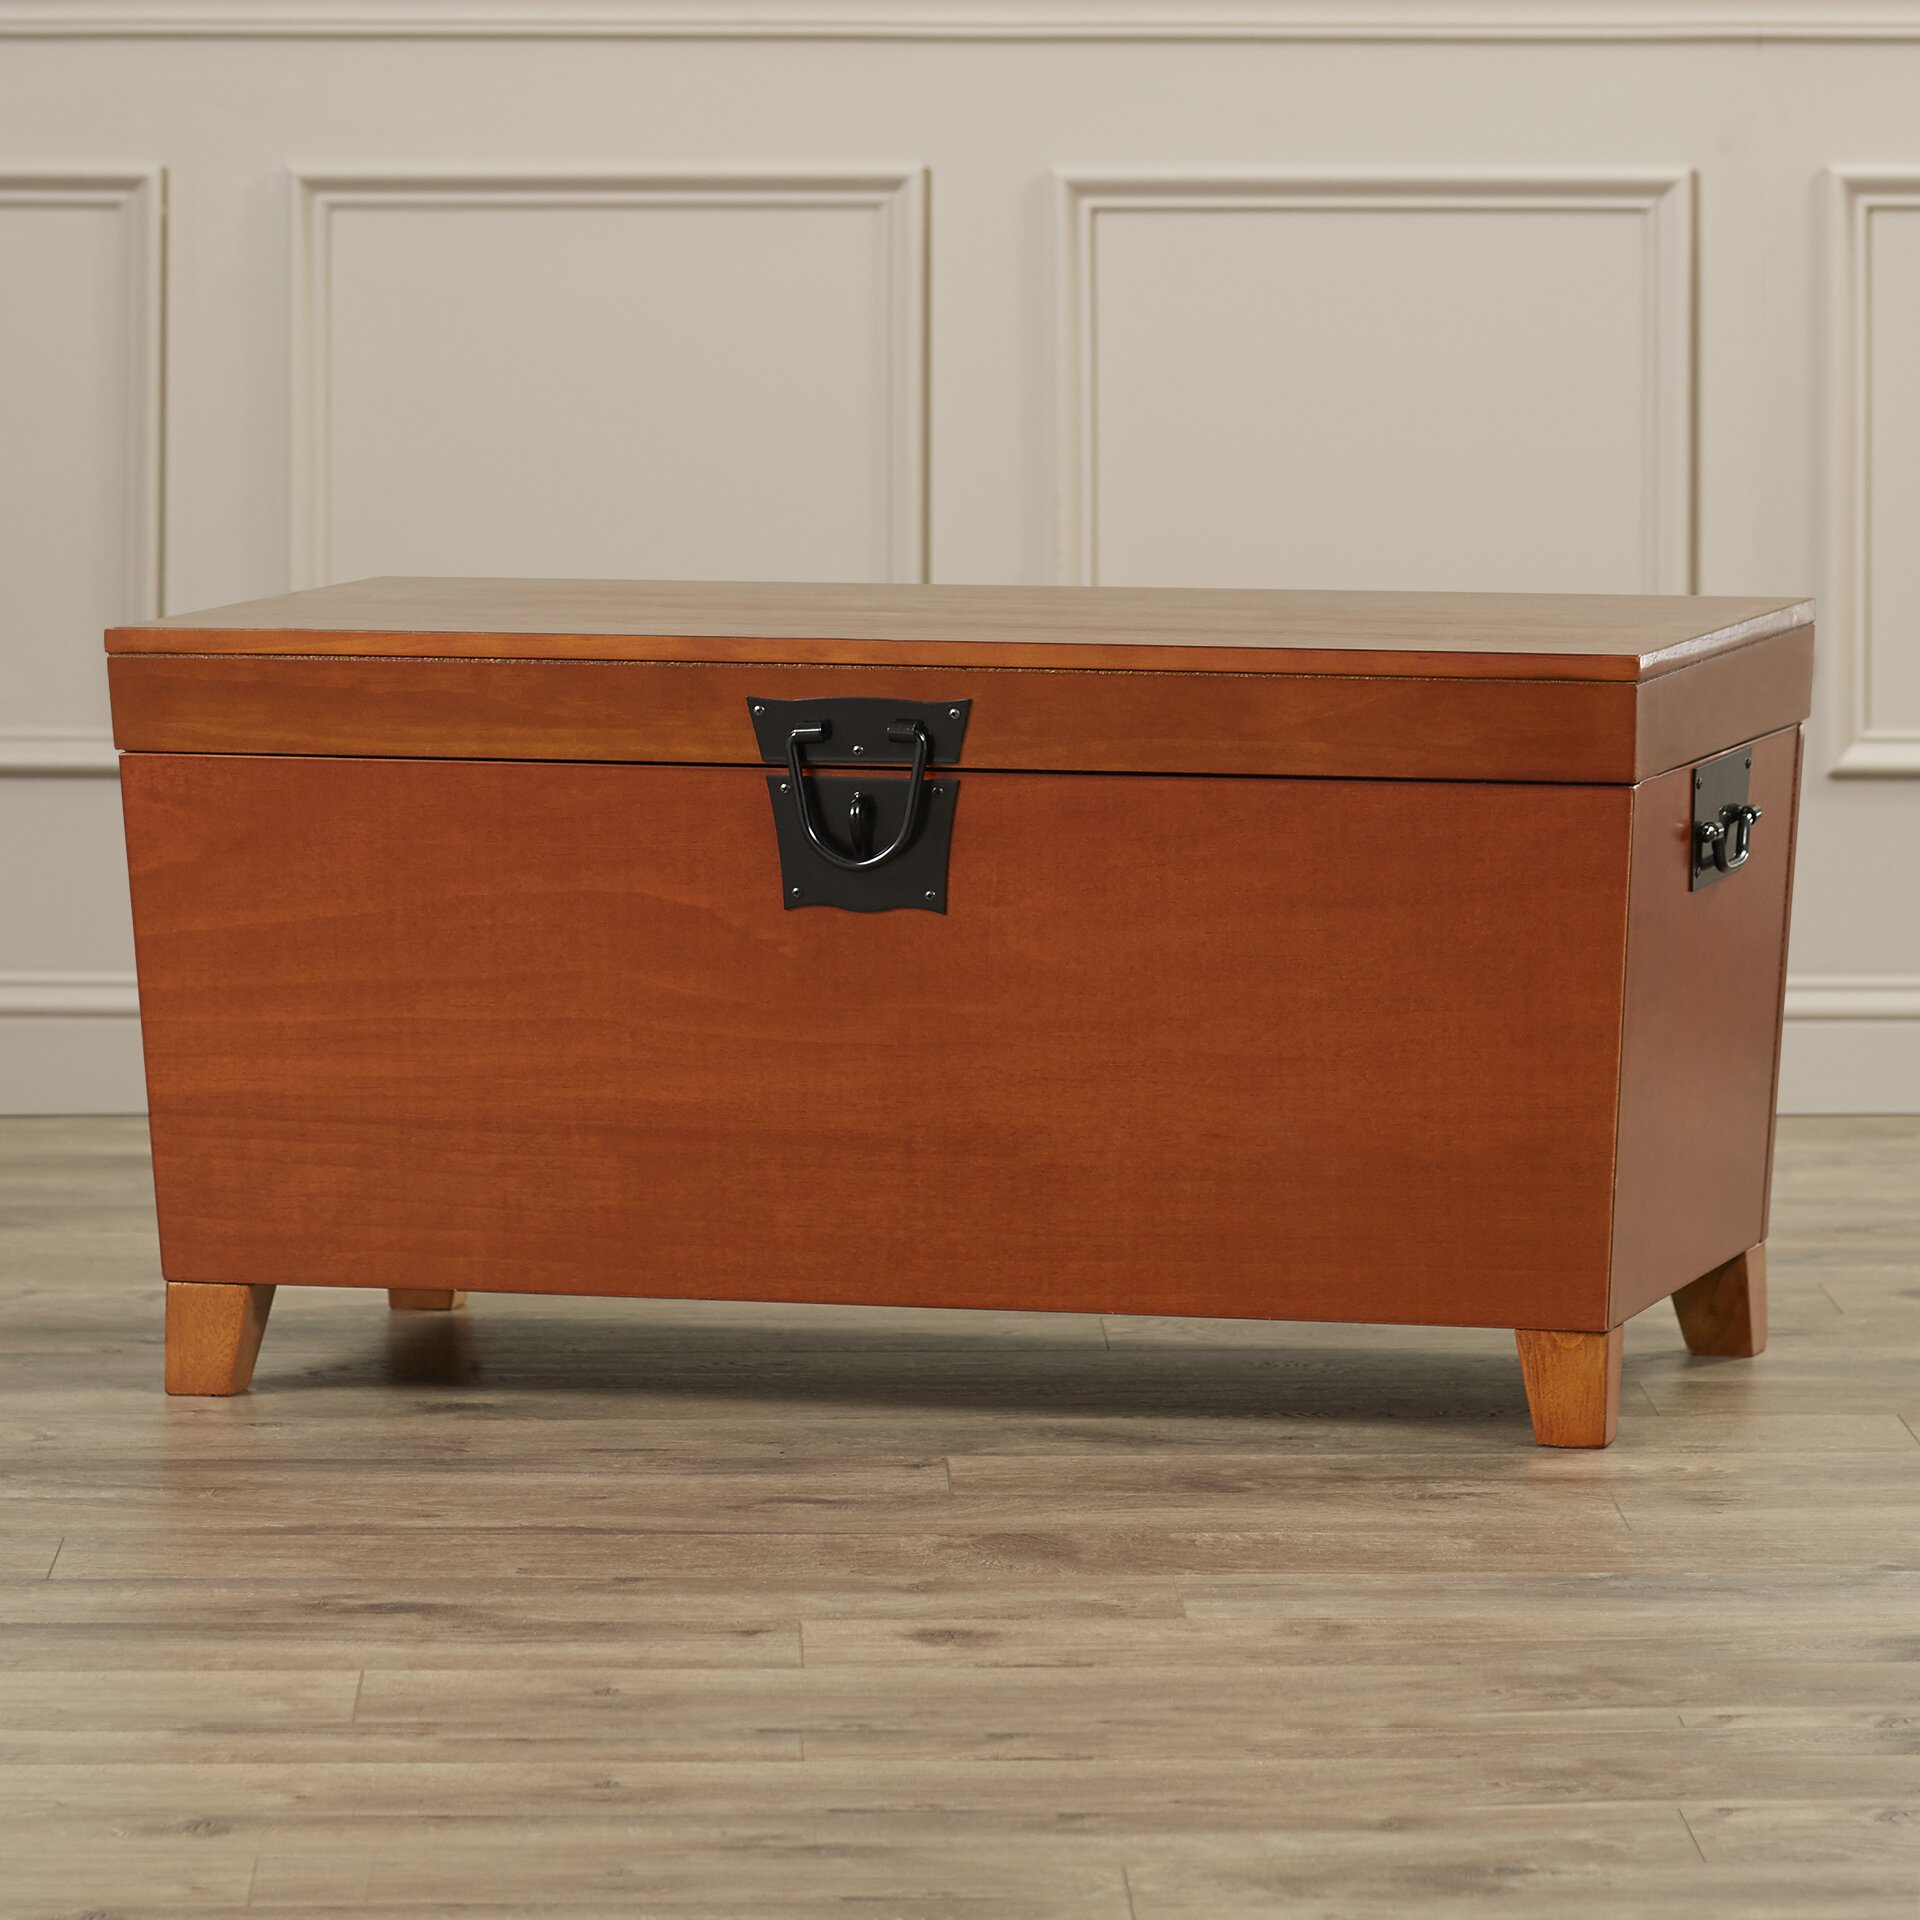 Barrett Trunk Coffee Table With Lift Top: Charlton Home Bischoptree Trunk Coffee Table With Lift Top